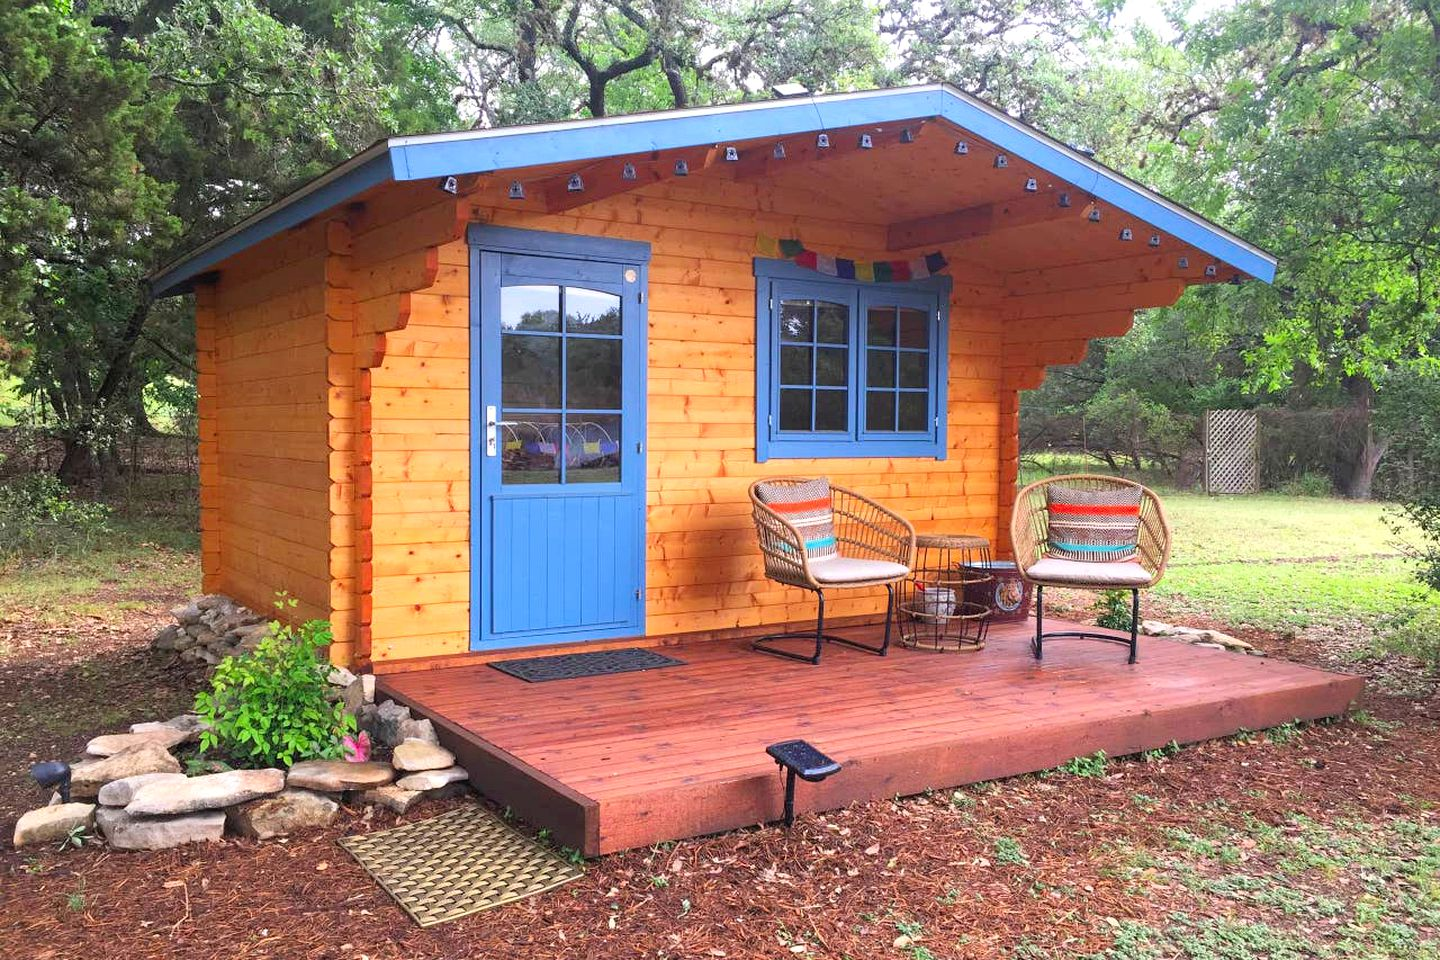 Texas cabin rental that's perfect for a Hill Country getaway